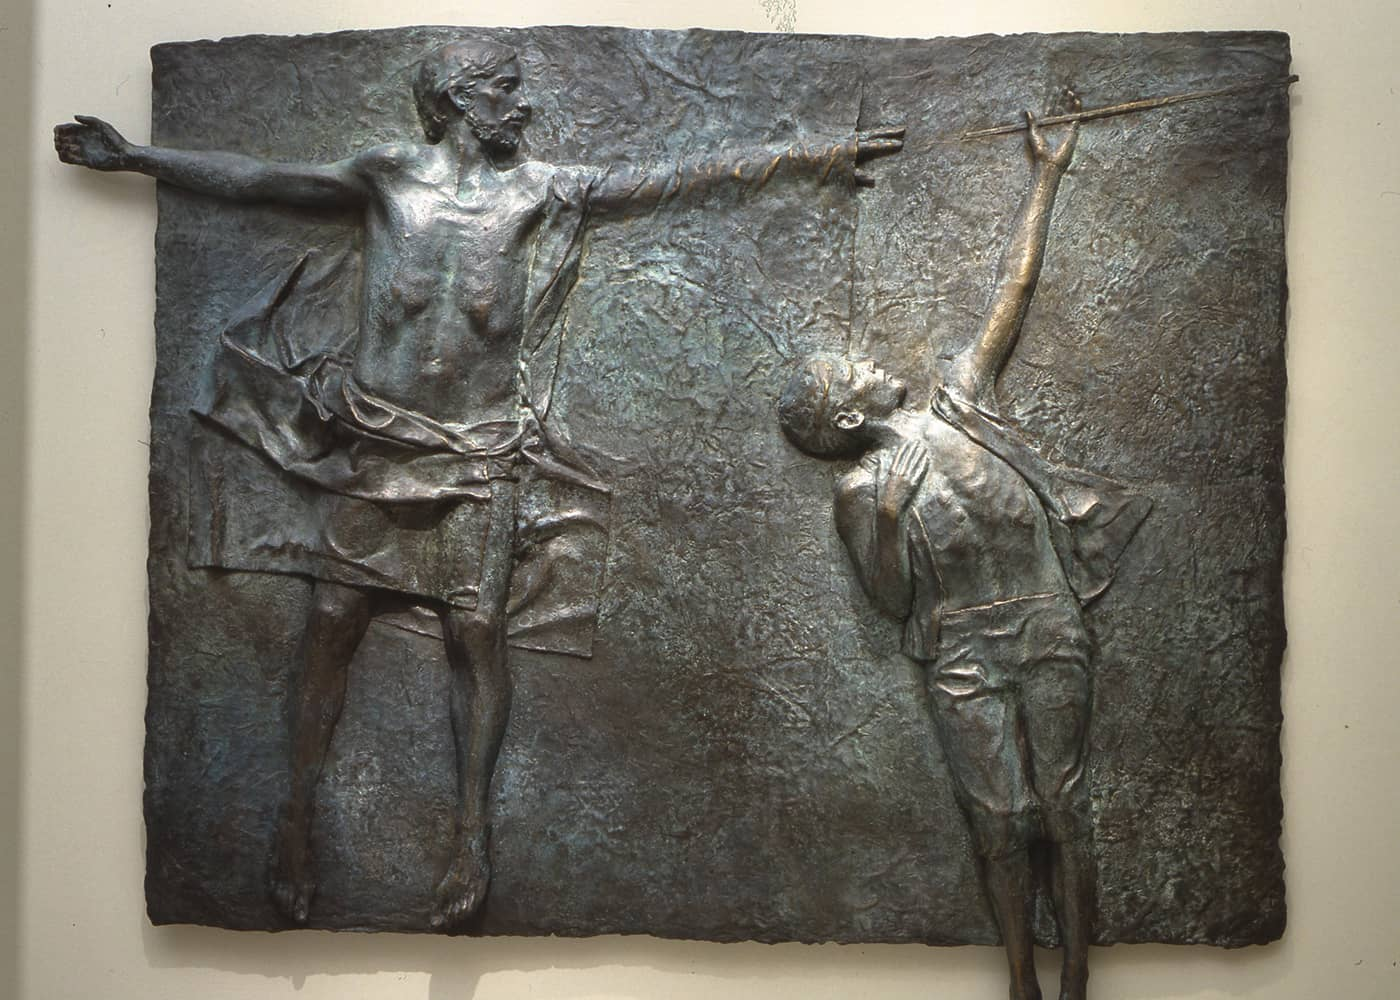 A metal art piece depicting a boy reaching out to an iron rod, with help from Jesus Christ